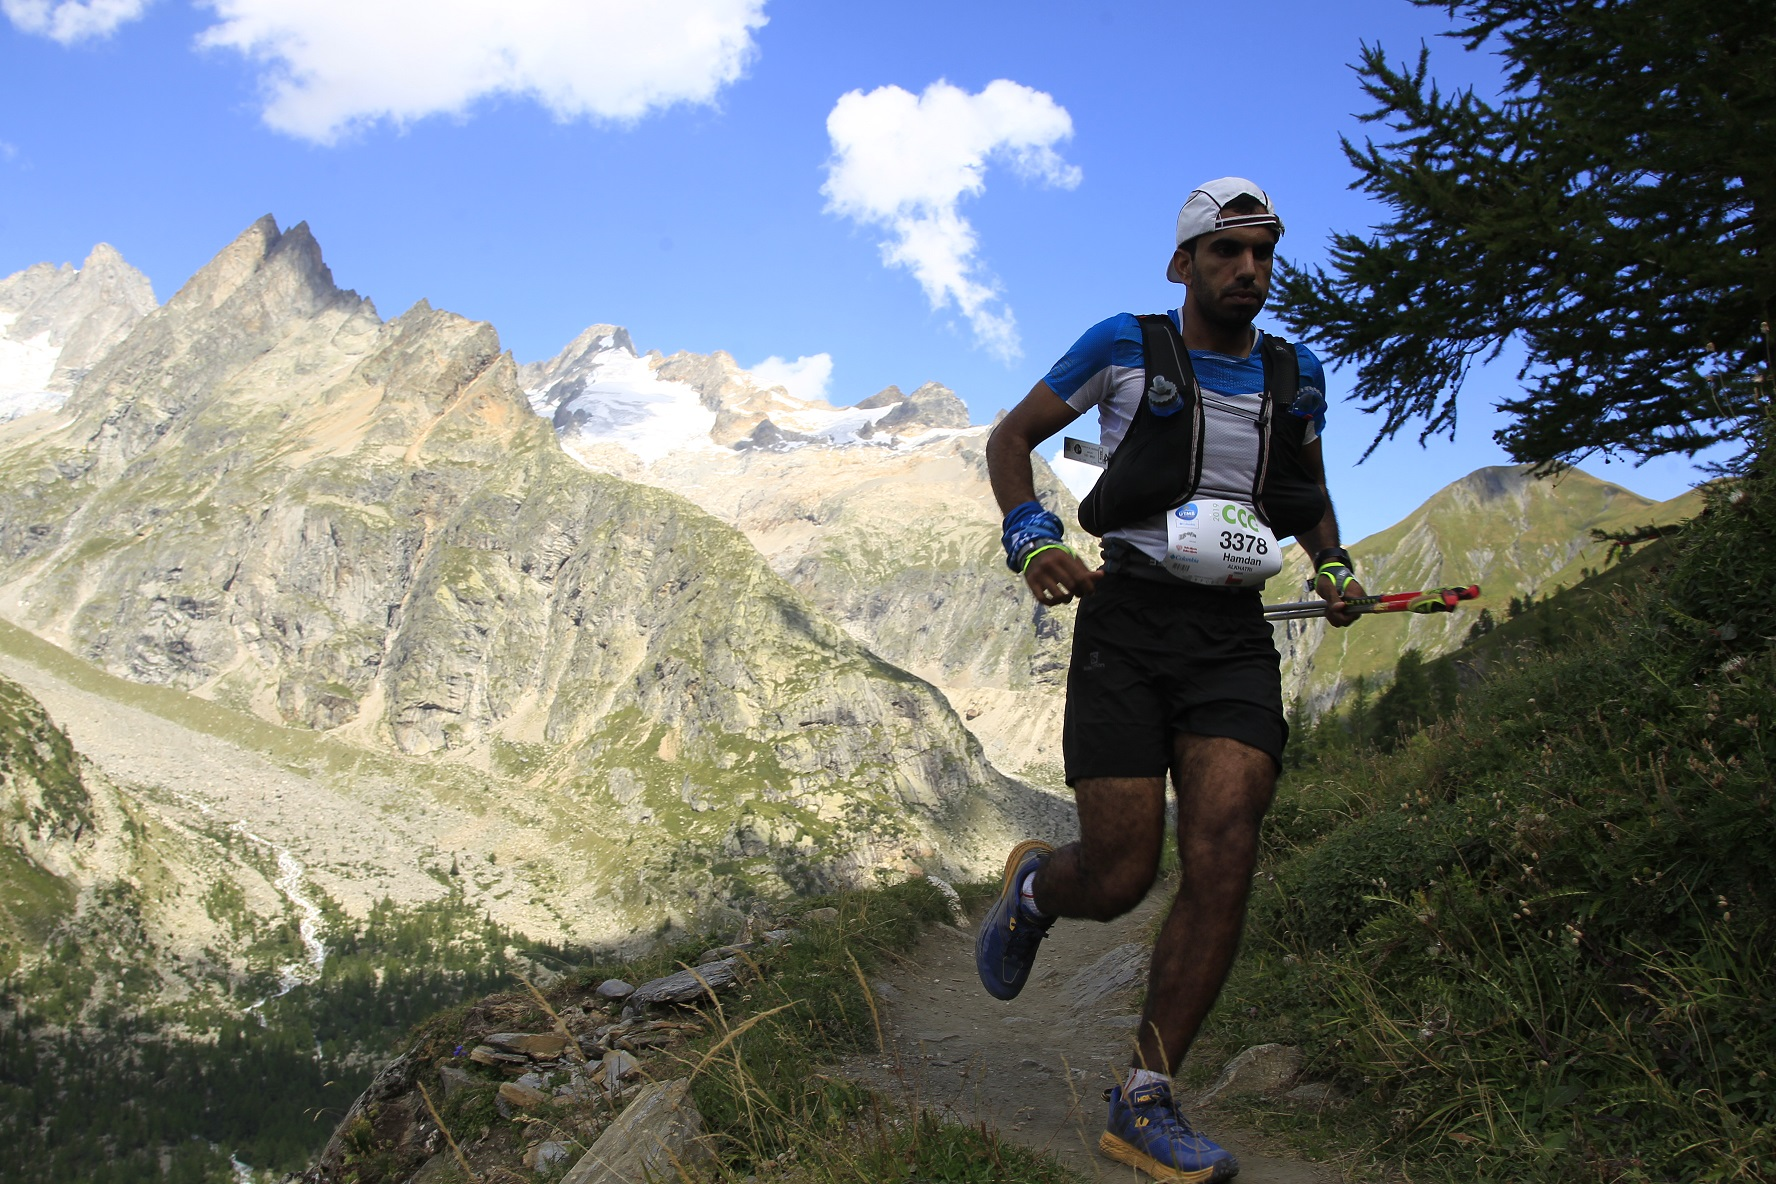 OMAN by UTMB® offers new courses for beginners and young runners